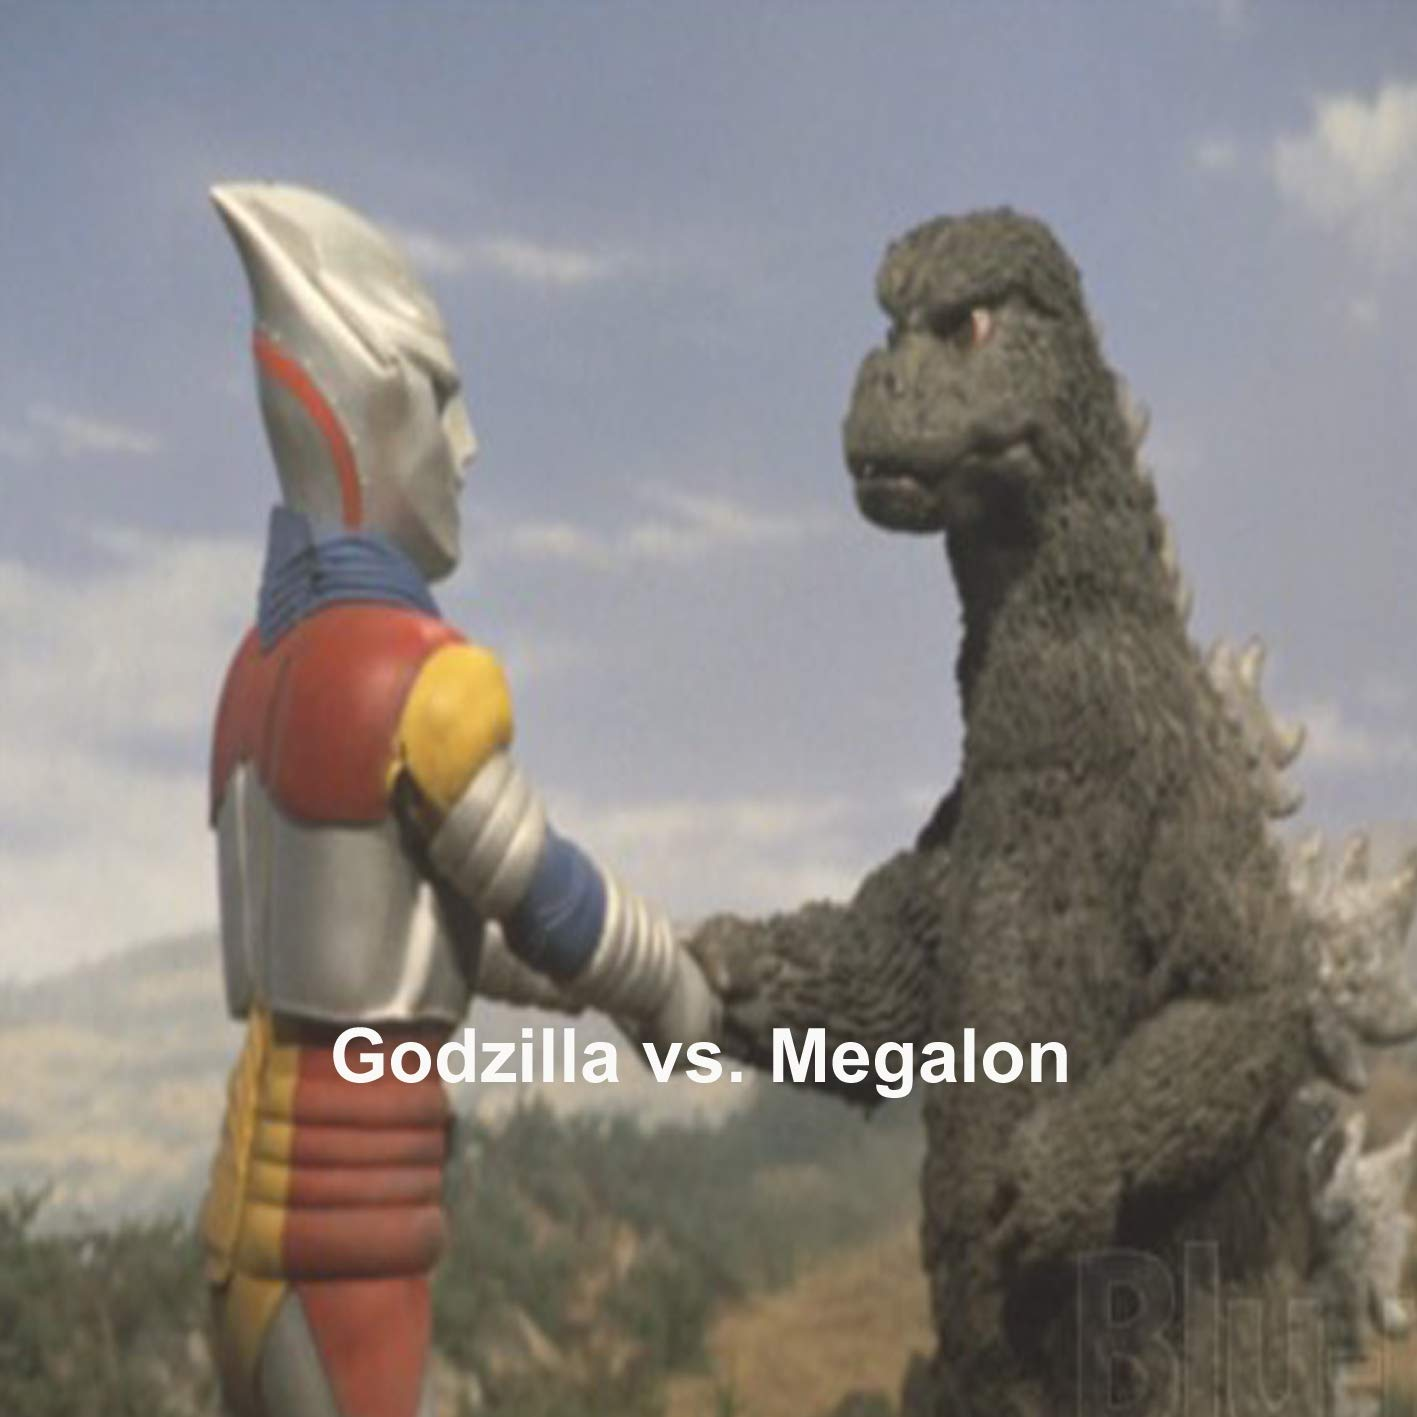 In Godzilla vs. Megalon, the angry Seatopians send their secret weapon Megalon to destroy Tokyo and eliminate the human race. But Earth still has a chance when the sleeping Godzilla is rudely awakened.